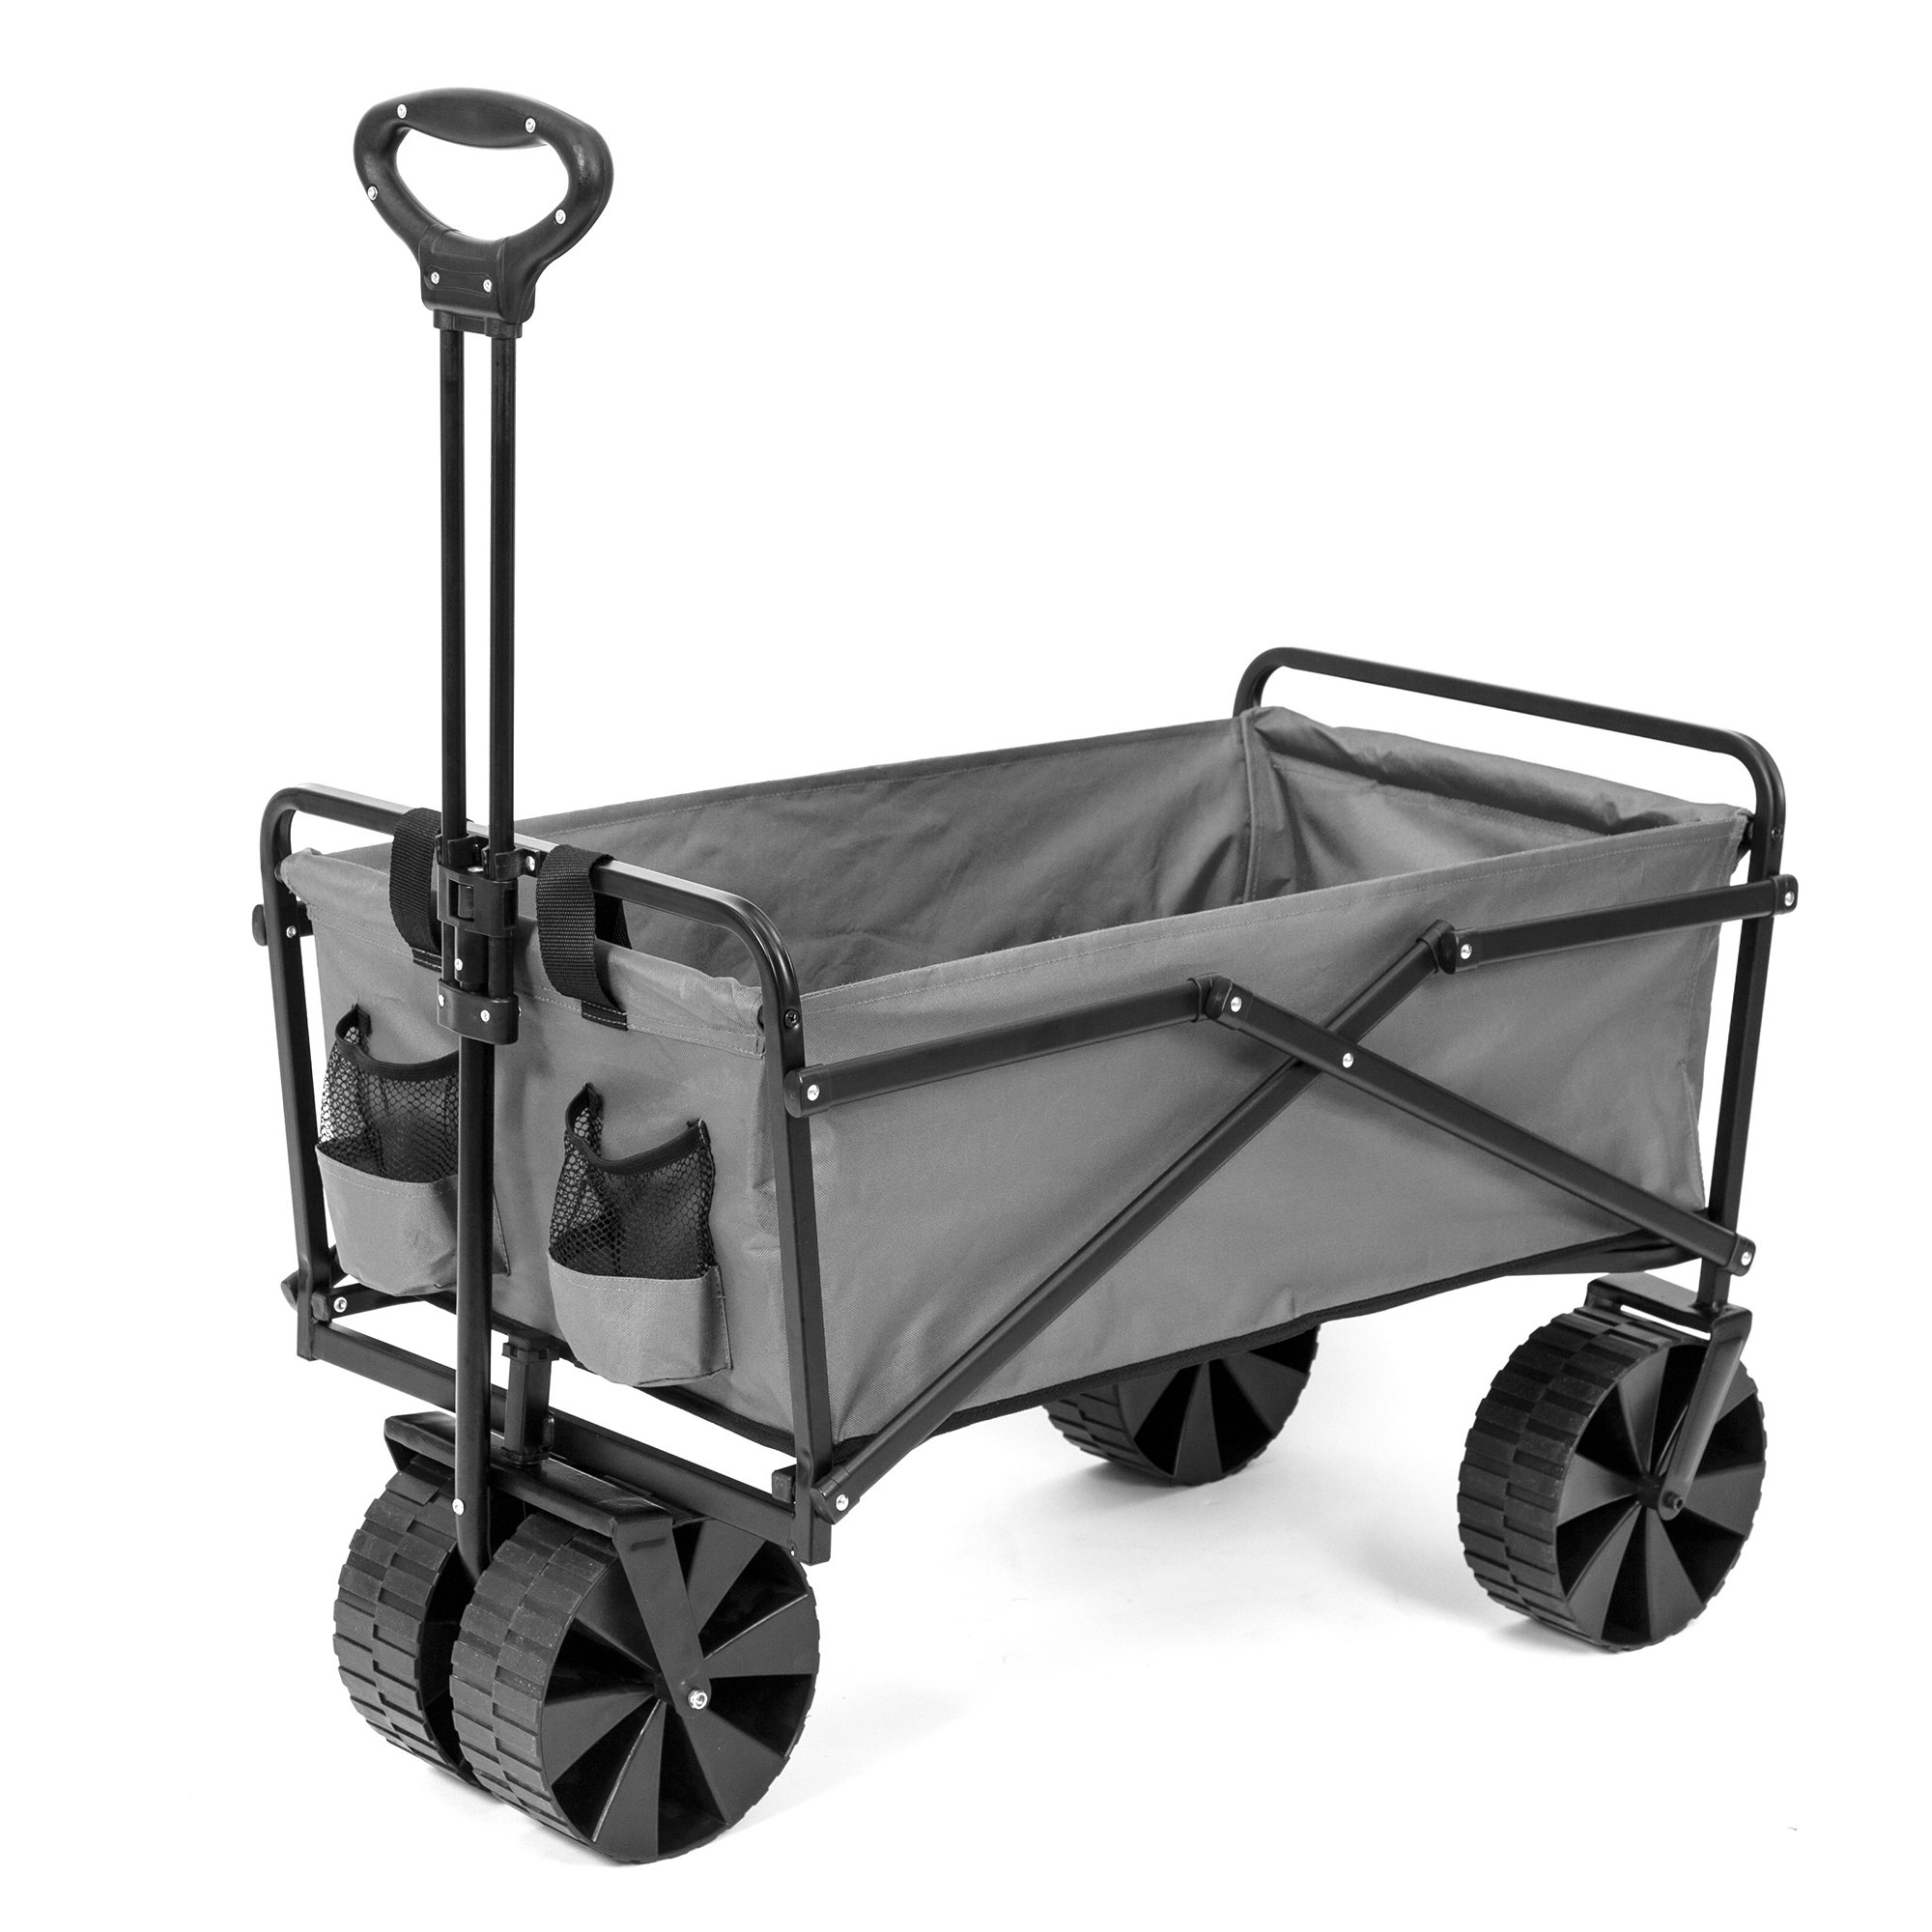 Seina Collapsible Utility Beach Wagon and Cart, Gray